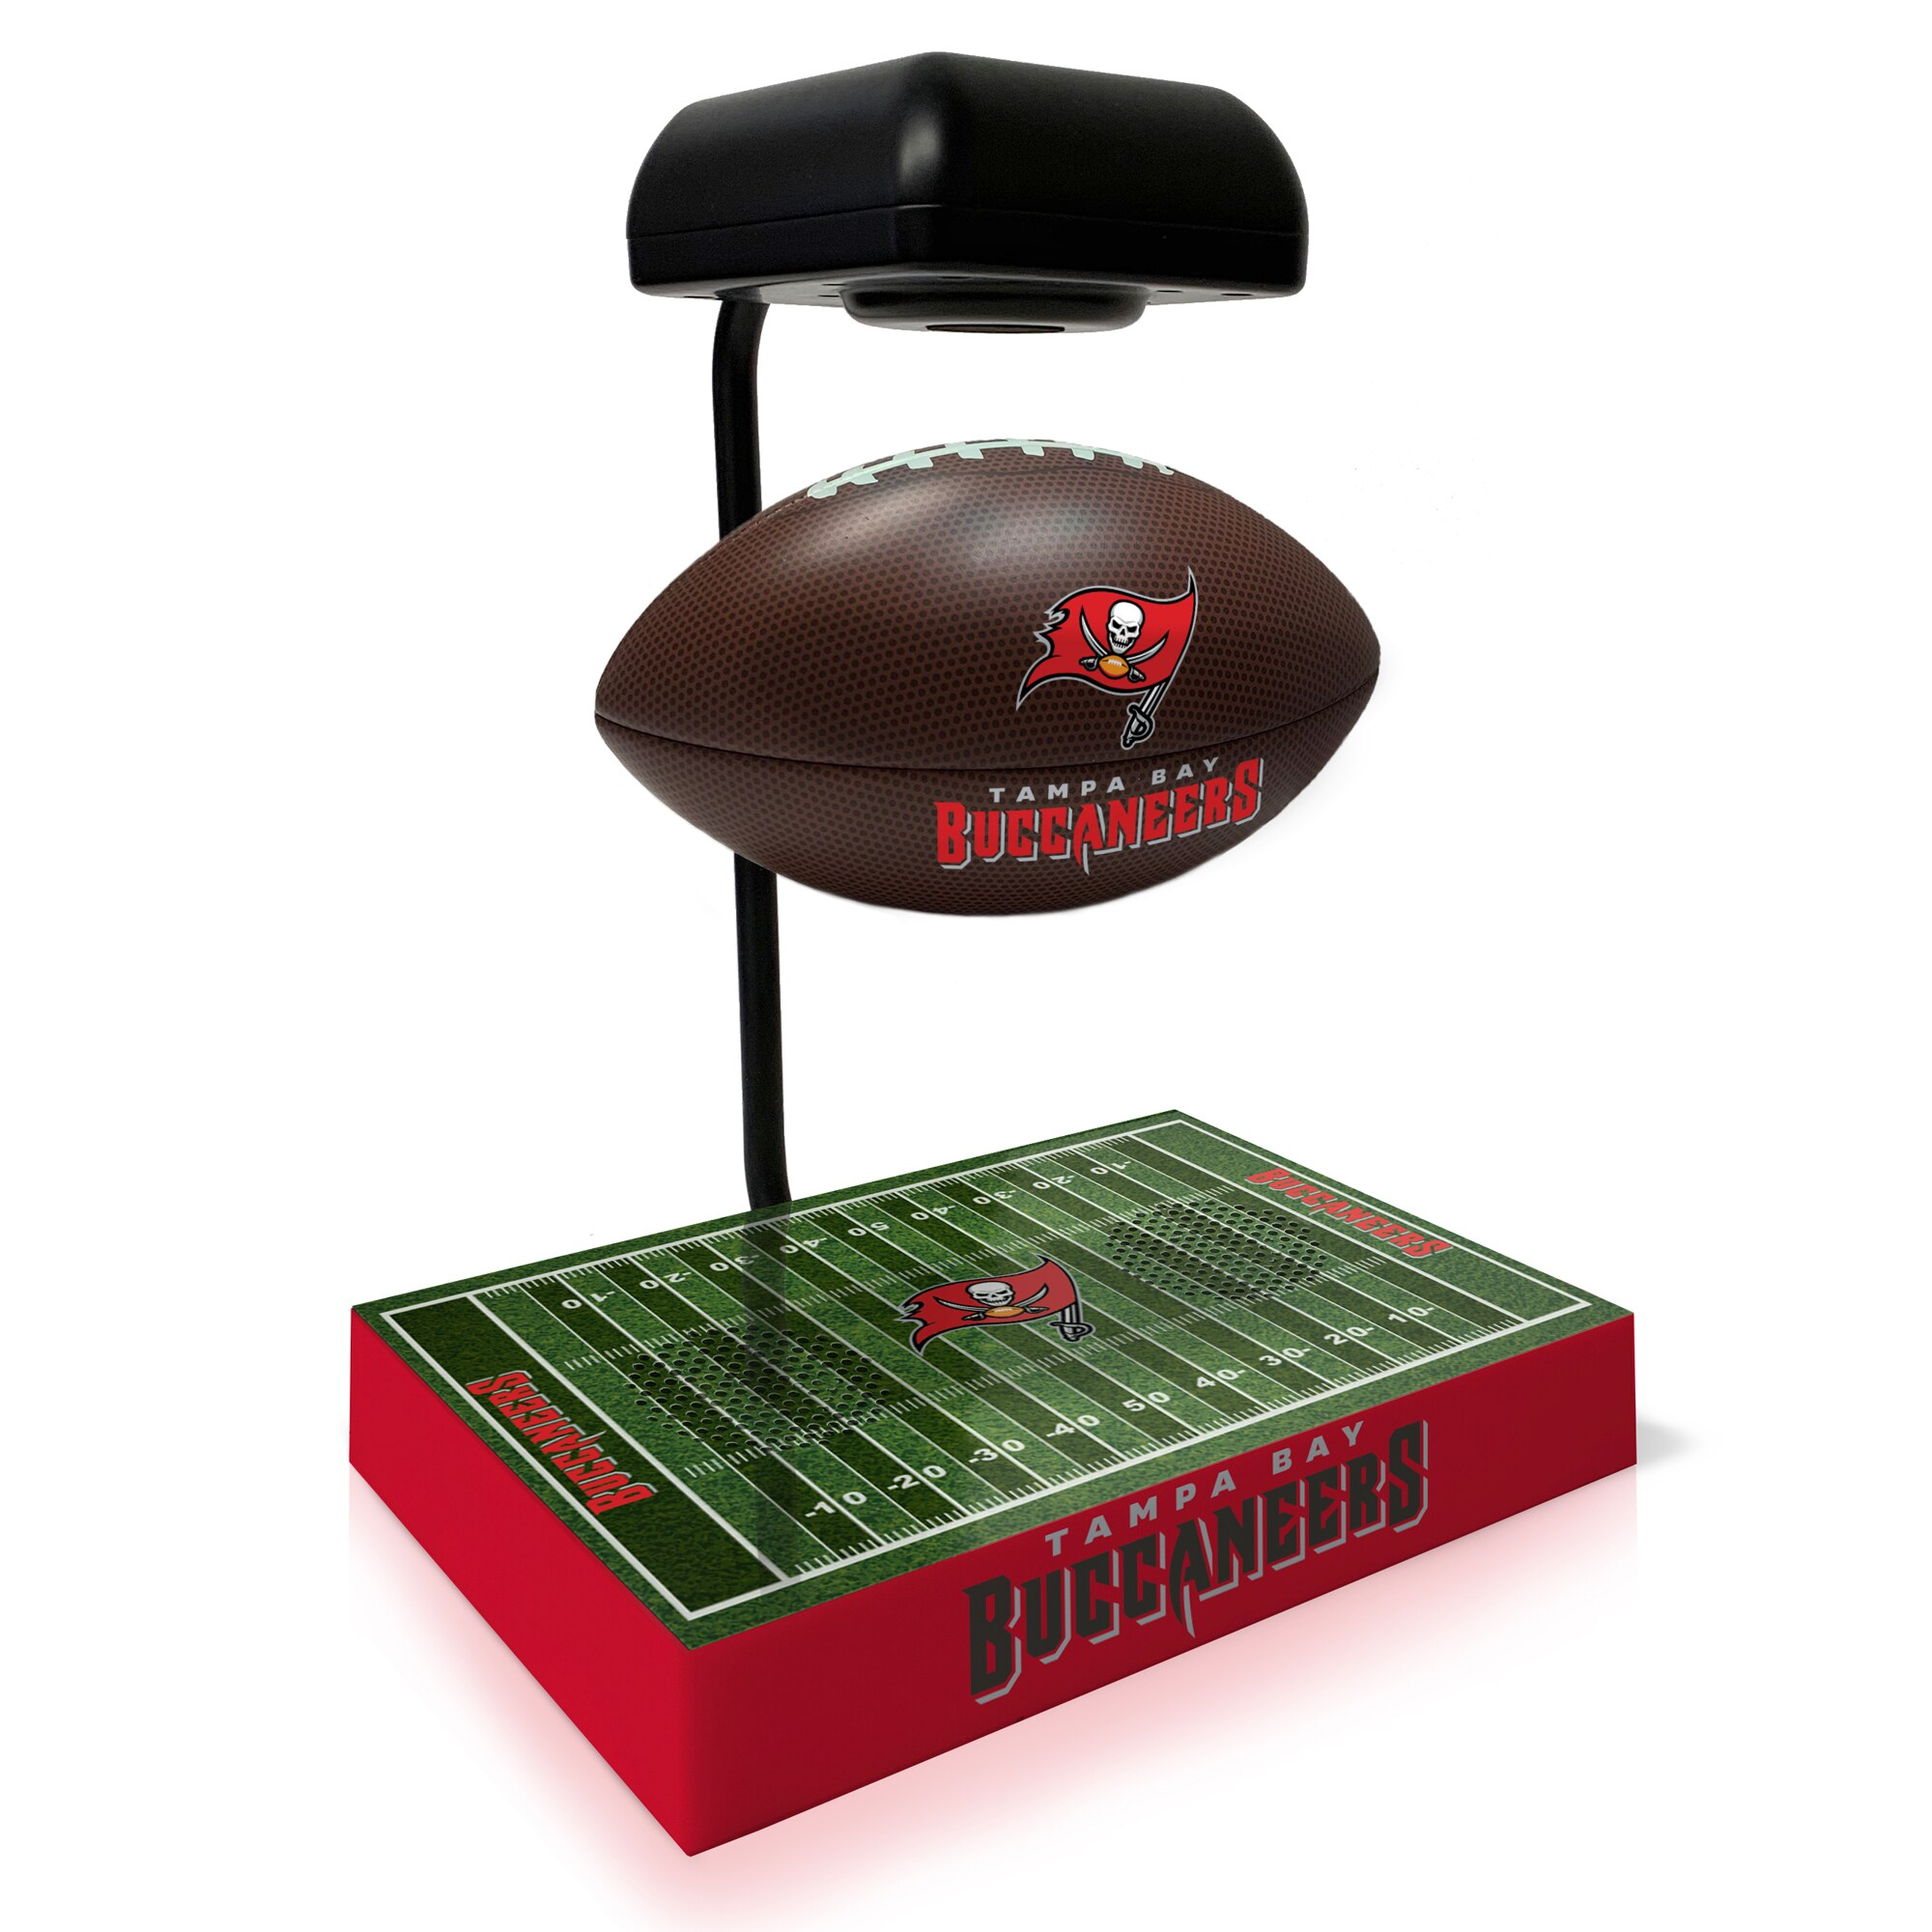 Tampa Bay Buccaneers Hover Football With Bluetooth Speaker